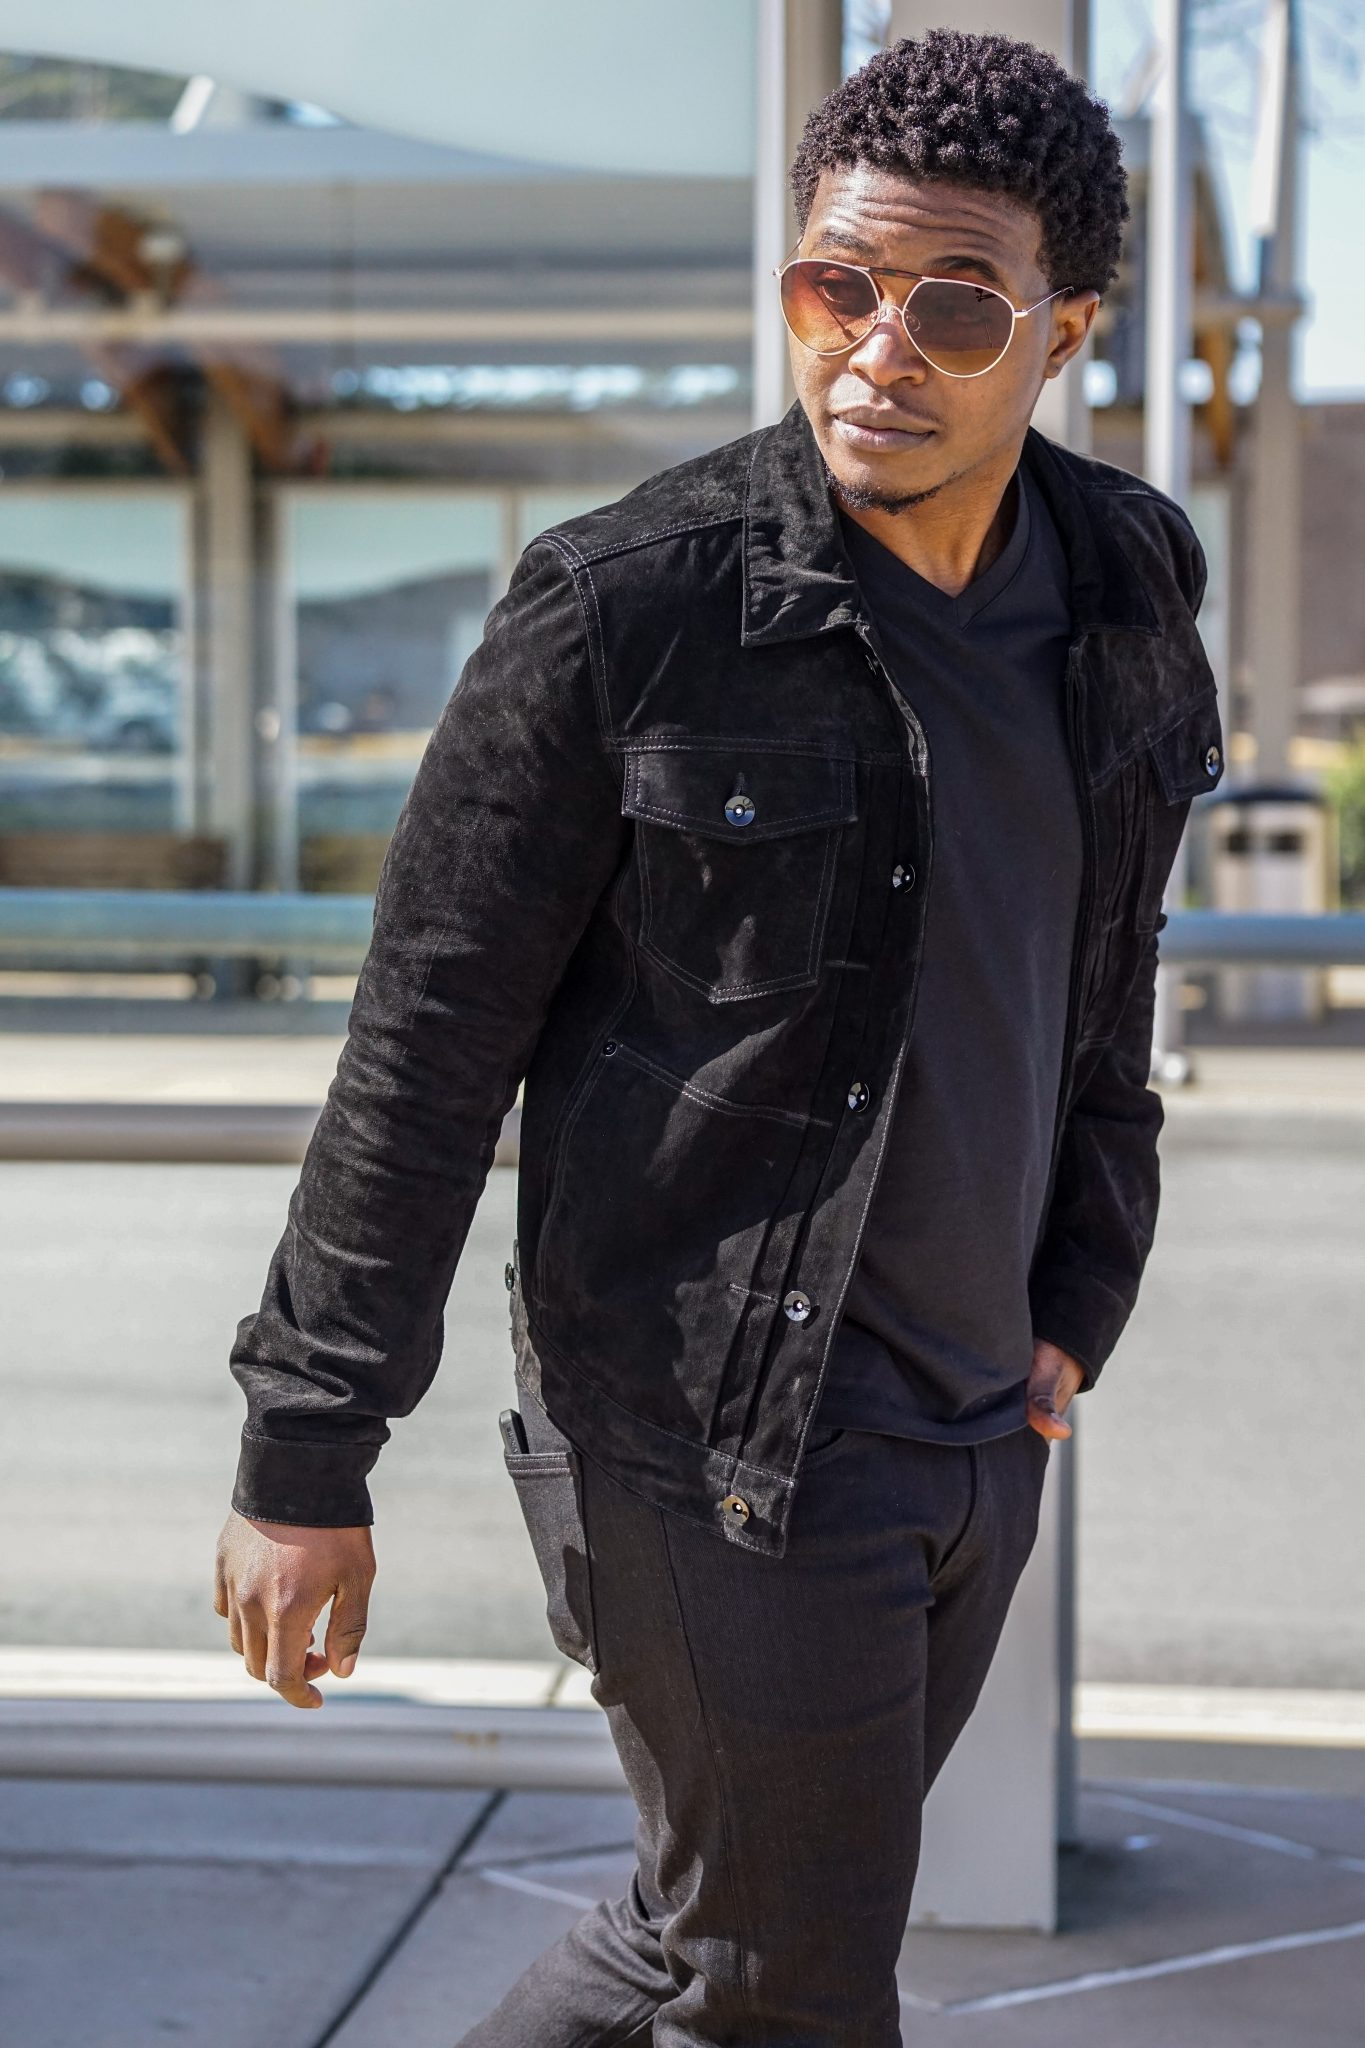 dapper-advisor-black-man-wearing-black-jack-threads-suede-leather-jacket-all-black-outfit-mens-2